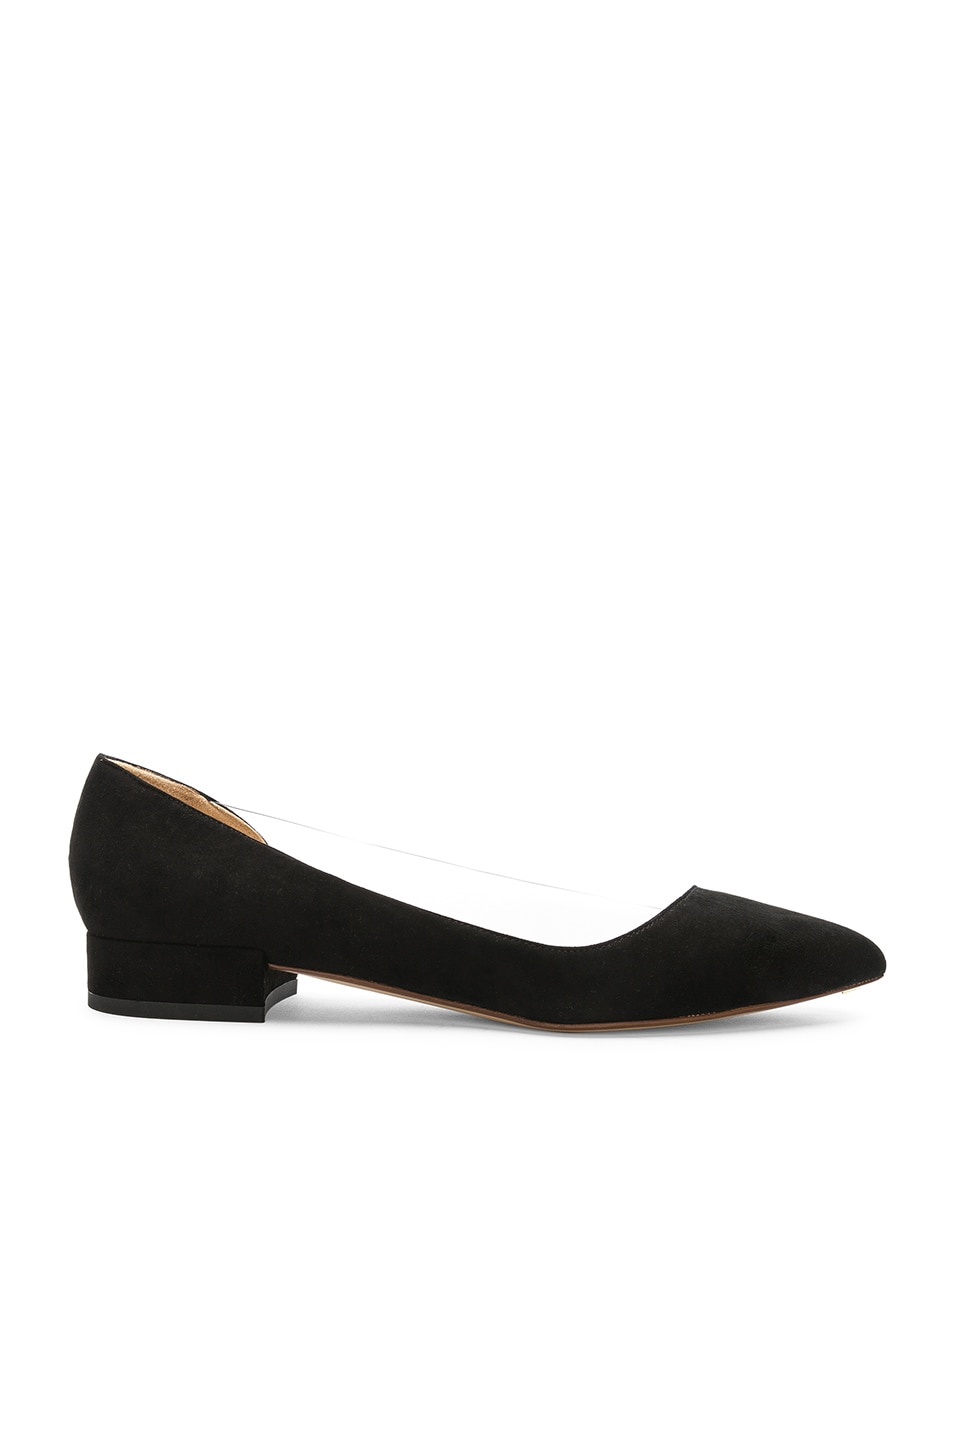 Image 1 of FRANCESCO RUSSO Suede & PVC Flats in Black